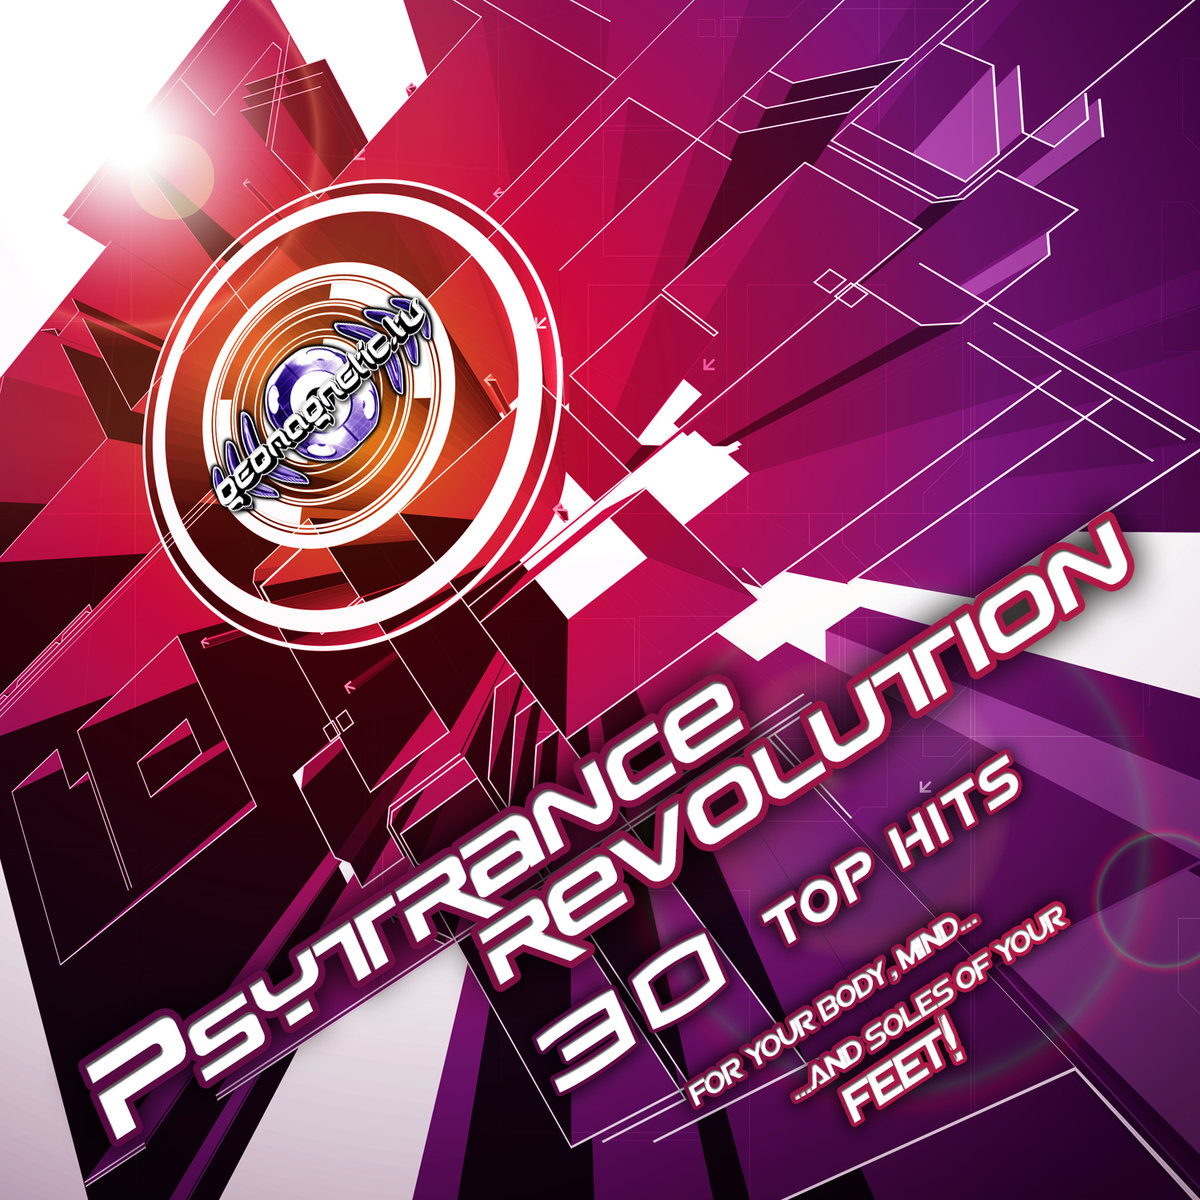 Synthaya - Valkyrie's Harmony @ 'Various Artists - Psytrance Revolution (30 Top Hits)' album (electronic, goa)